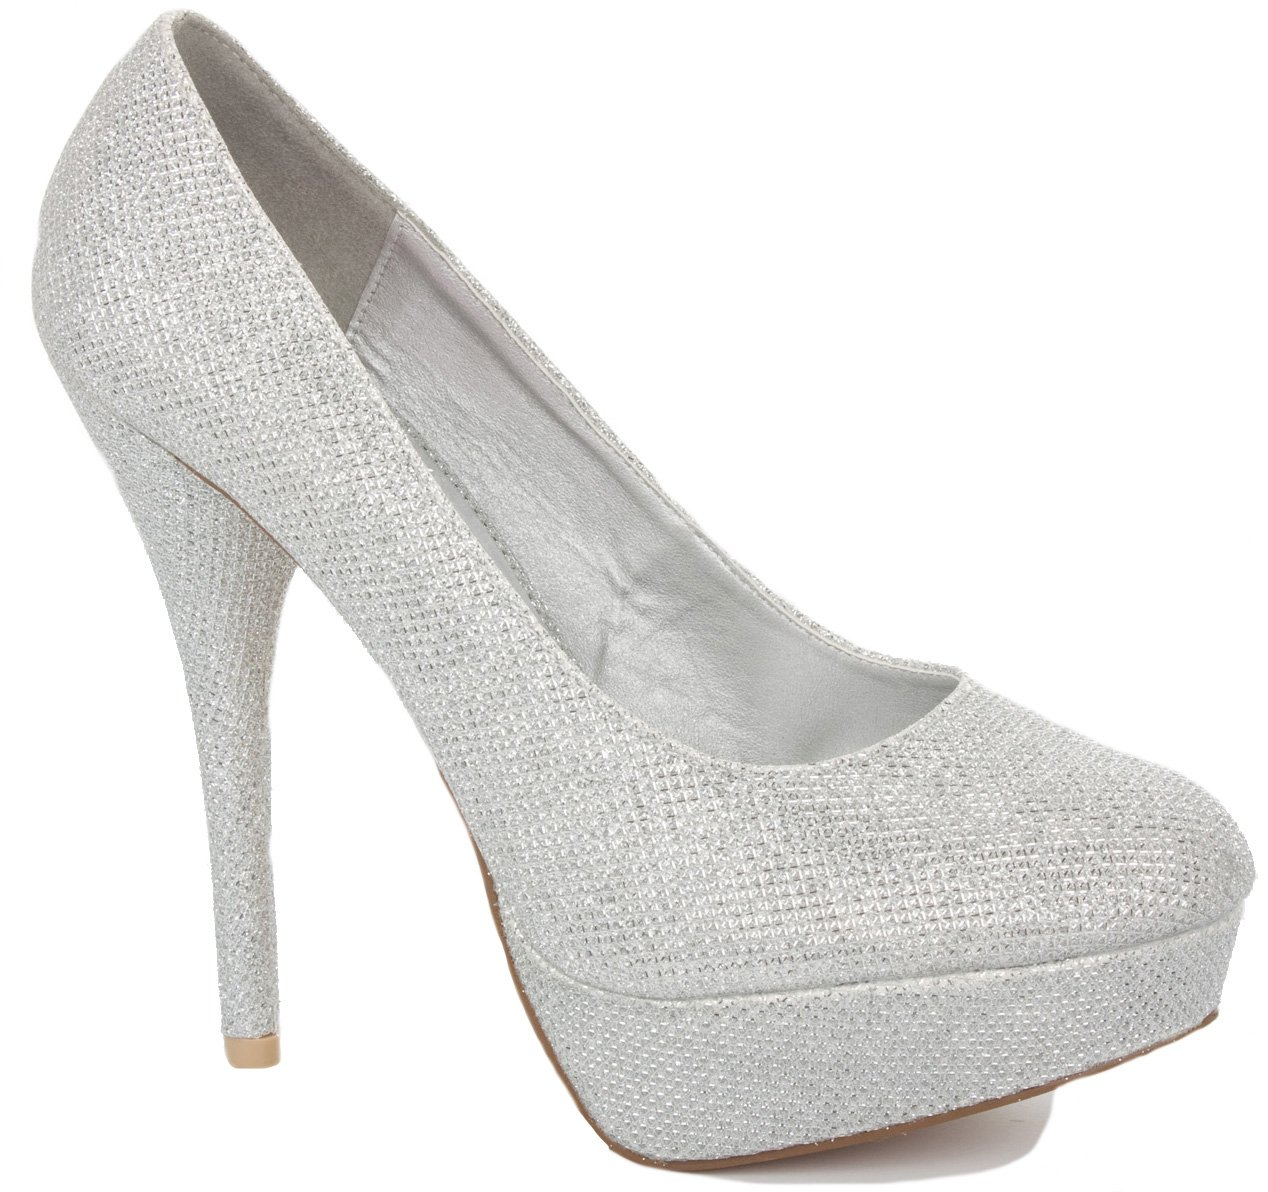 NEW WOMENS LADIES PLATFORM PARTY PROM WEDDING BRIDAL WORK HIGH HEELS  STILETTO COURT SHOES PUMPS SIZE 3-8: Amazon.co.uk: Shoes & Bags